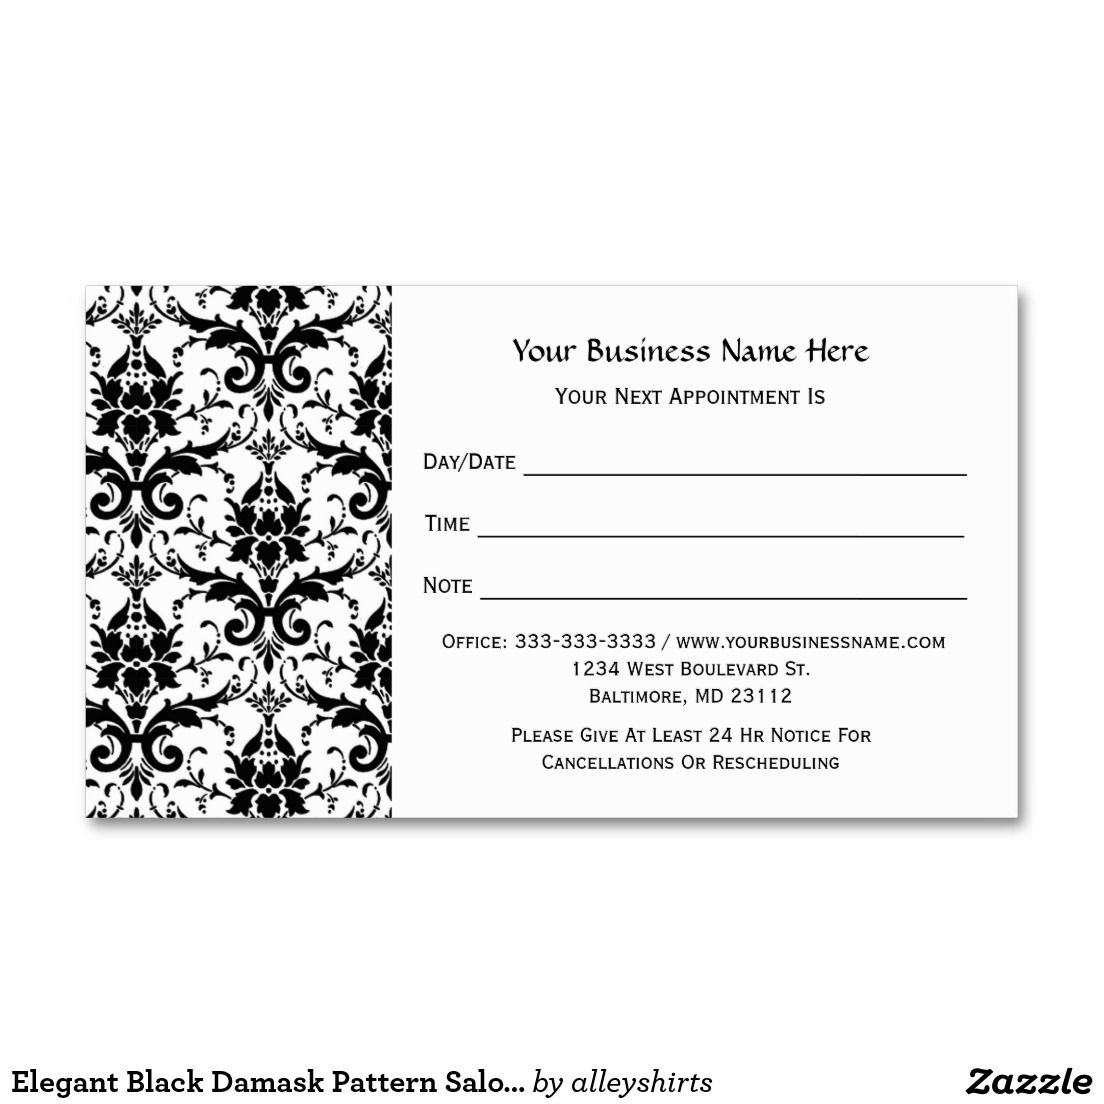 Appointment Business Card Template Image Collections Templates - Business card appointment template